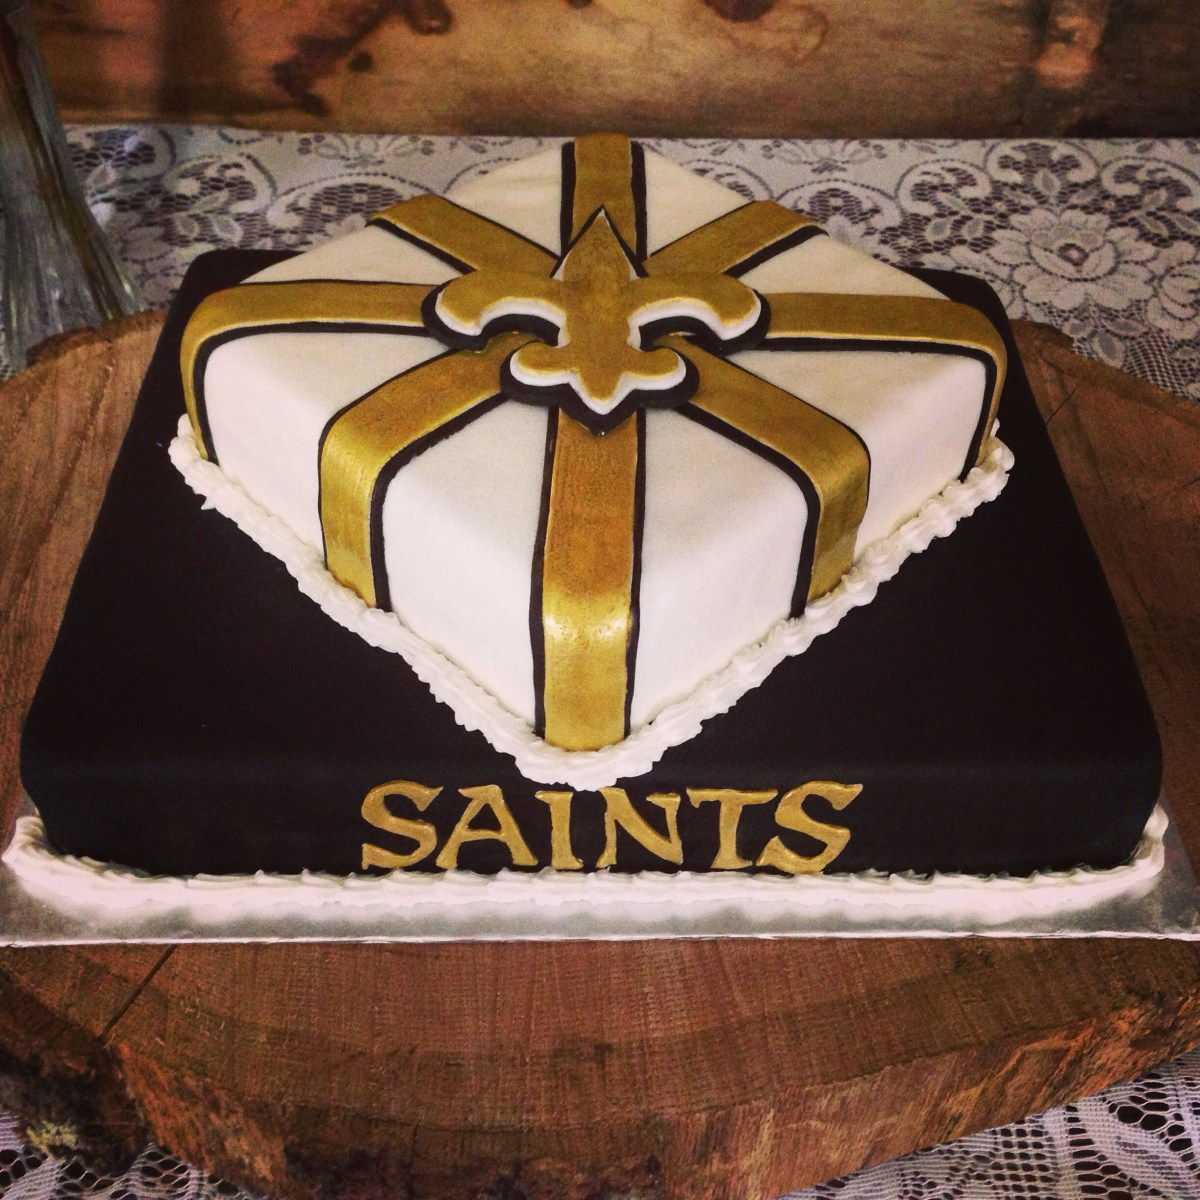 Incredible Saints Birthday Cake New Orleans Saints Cake My Cakes And Cupcakes Personalised Birthday Cards Veneteletsinfo